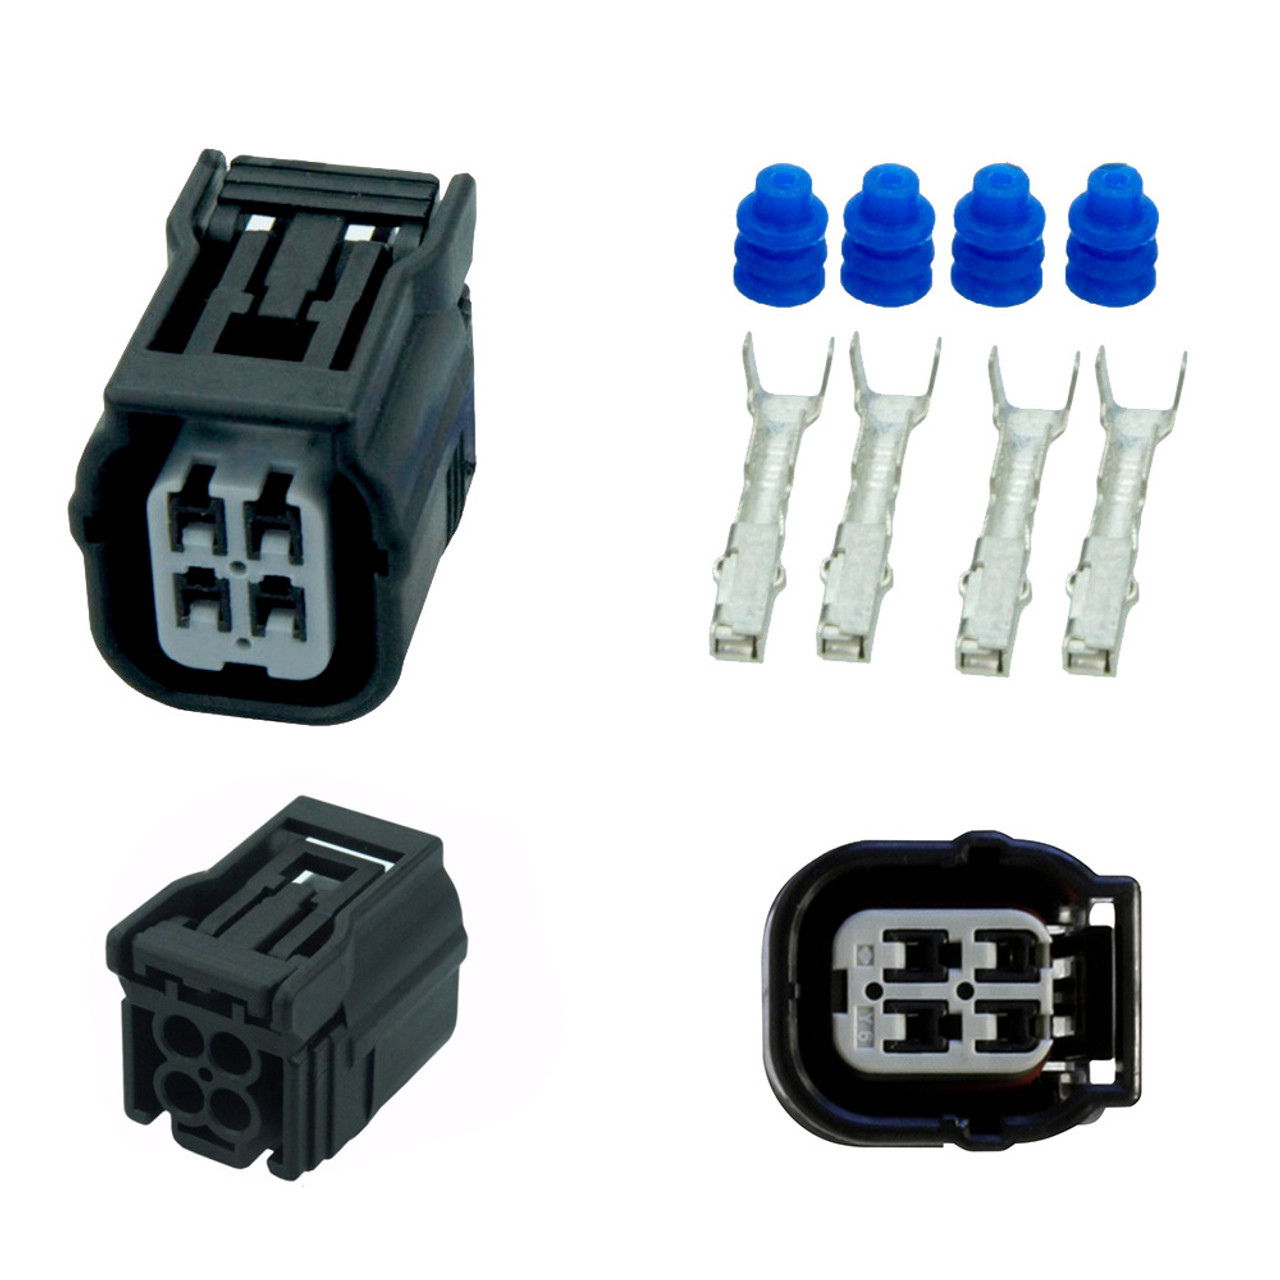 hight resolution of 4 wire o2 oxygen sensor female connector harness kit for honda accord civic cr v